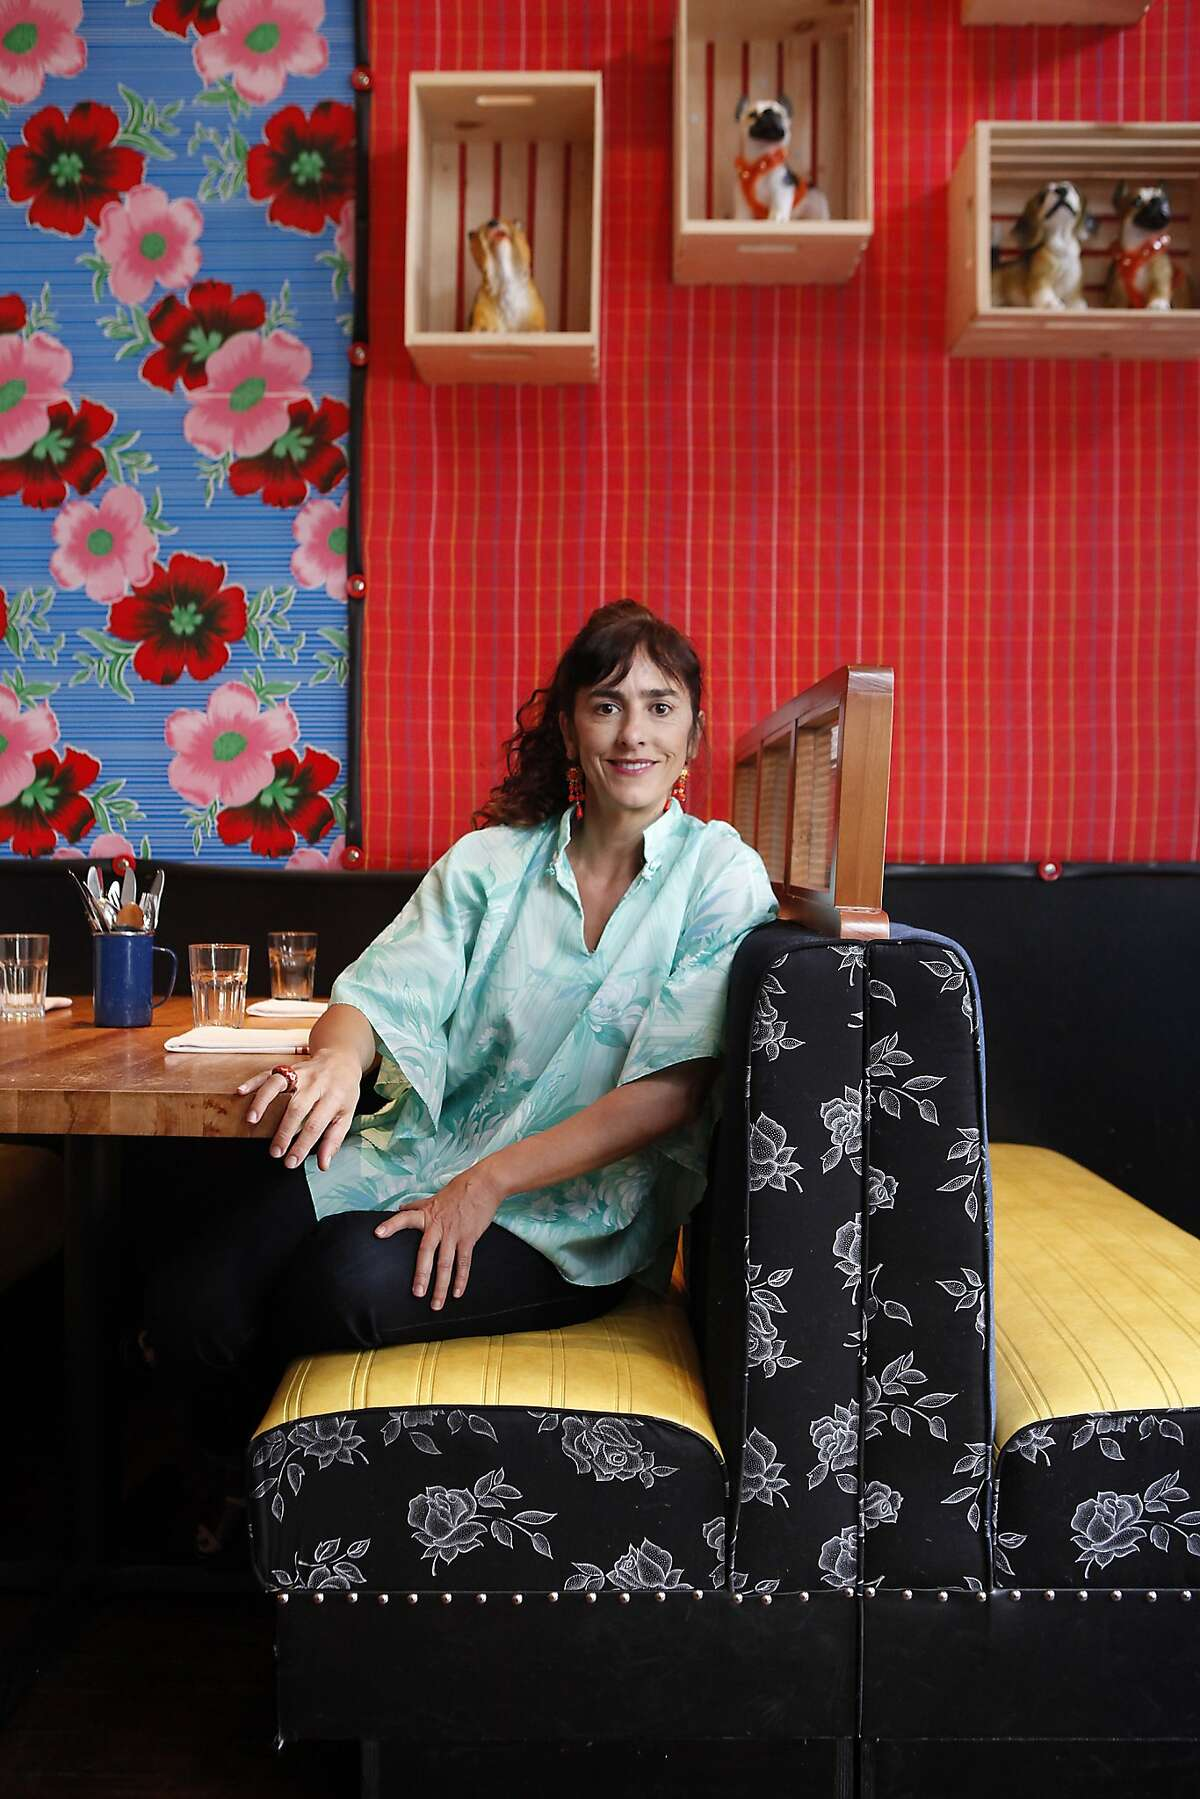 Designer Lorena Zertuche sourced items locally and from Mexico when she decorated the interior of Lolo when the restaurant moved to it's new location on Valencia St. in San Francisco, CA, Thursday March 27, 2014.